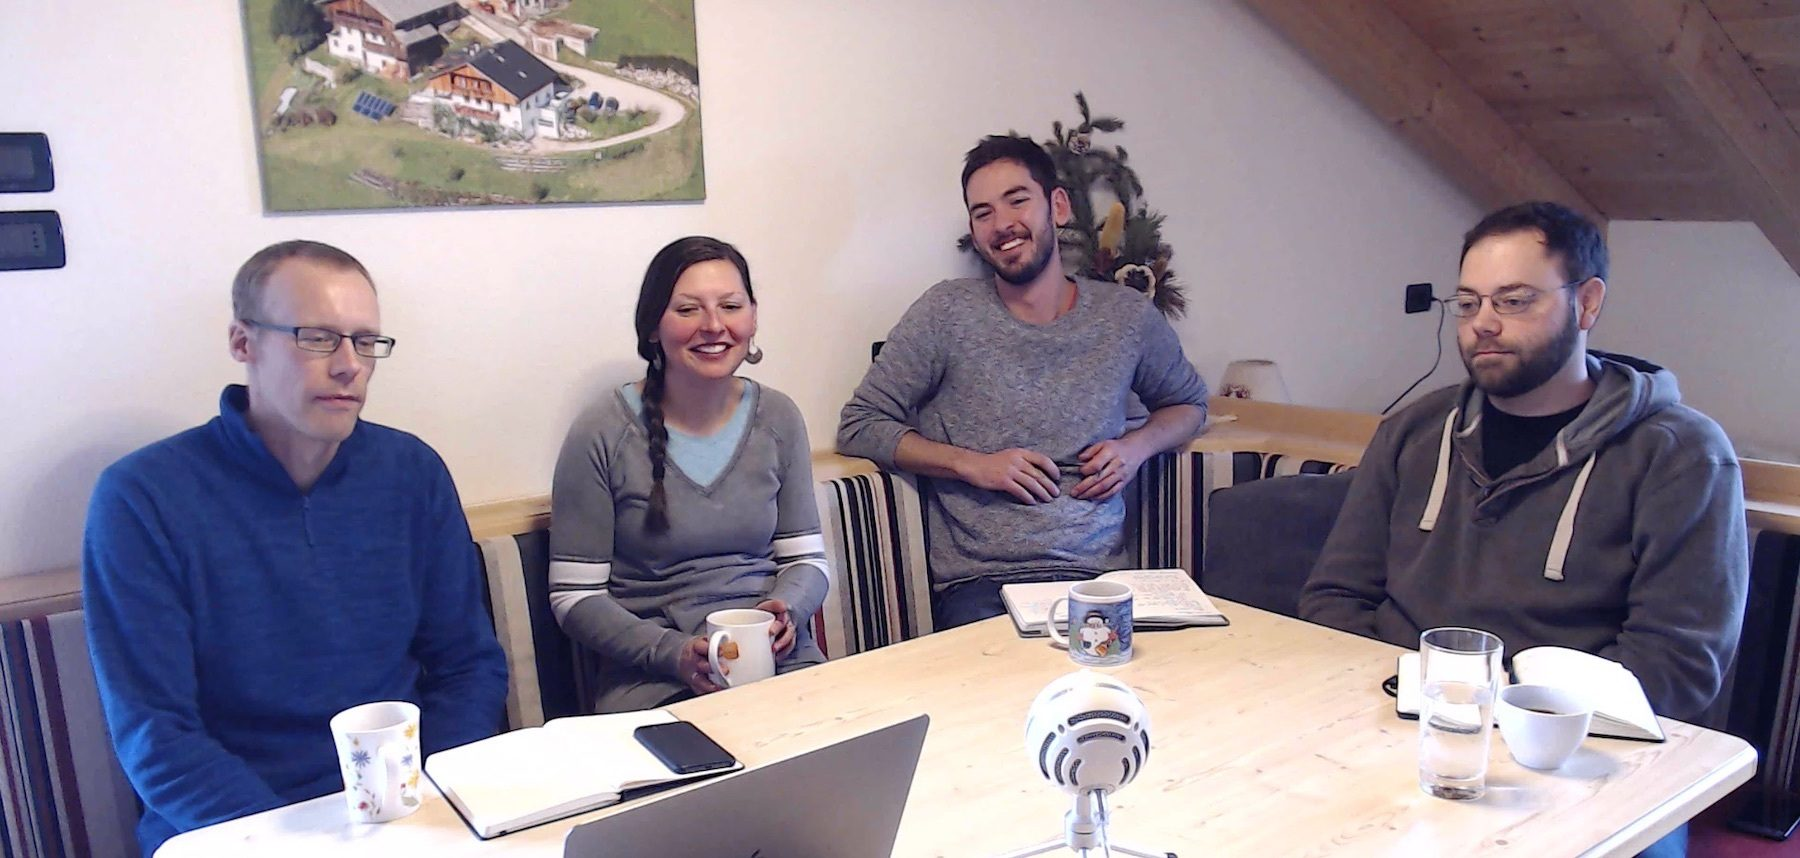 Image of the Highrise Digital team on the live WordPress Q&A